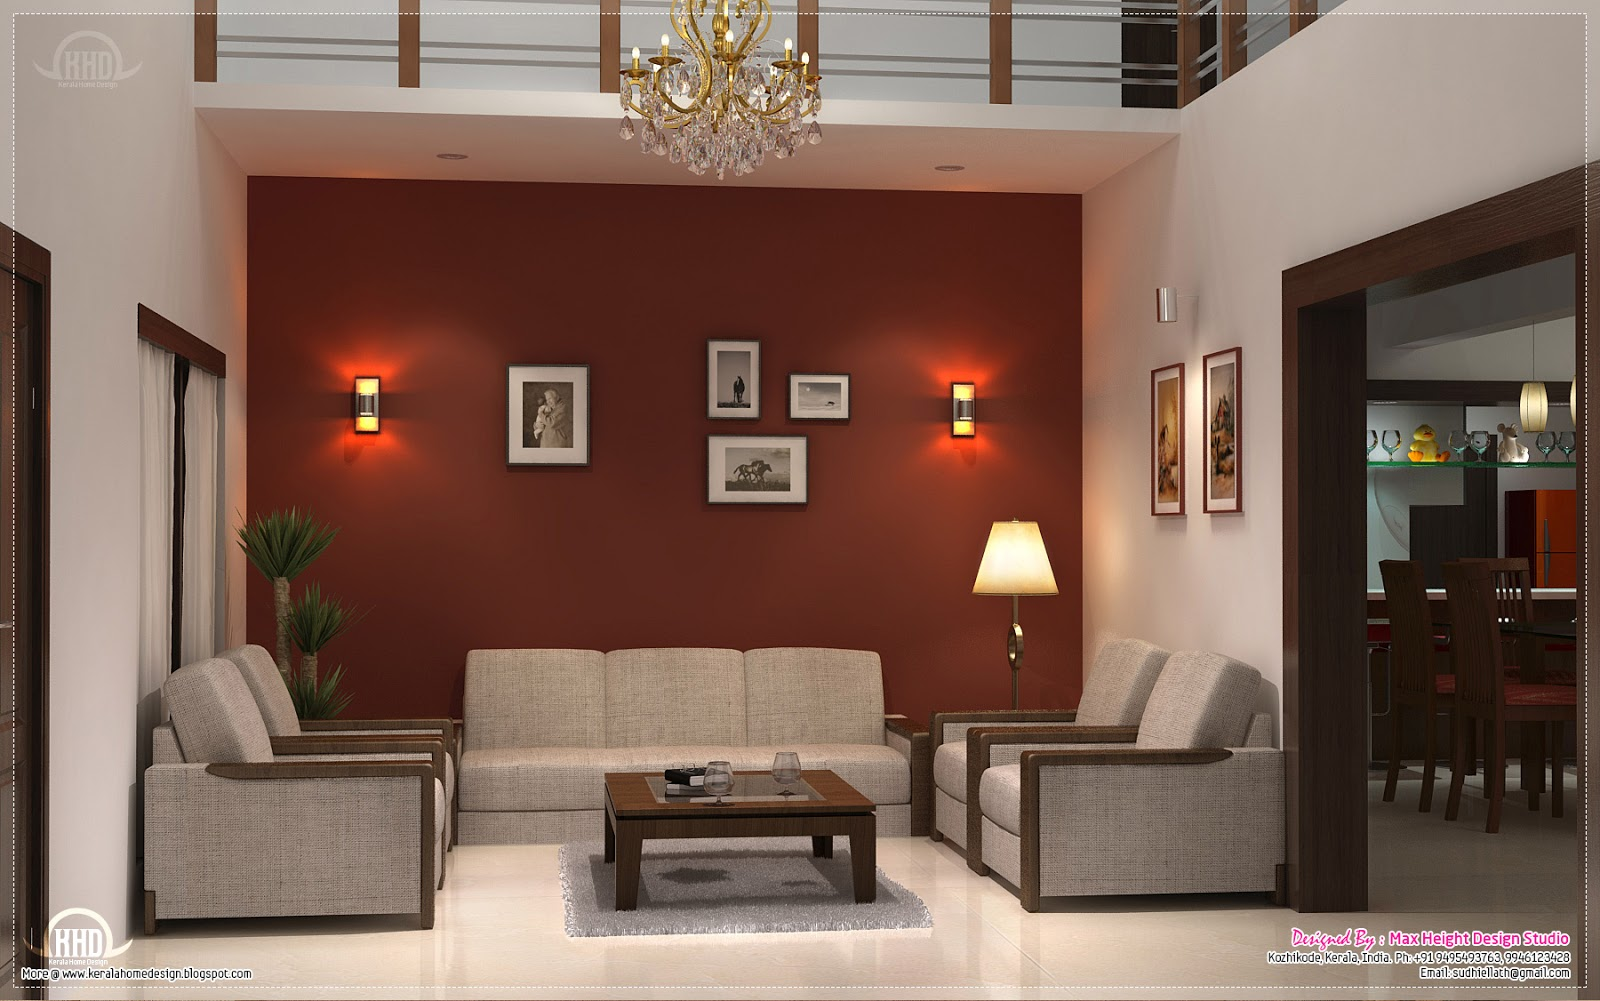 Home interior design ideas kerala home design and floor for Home interior design living room